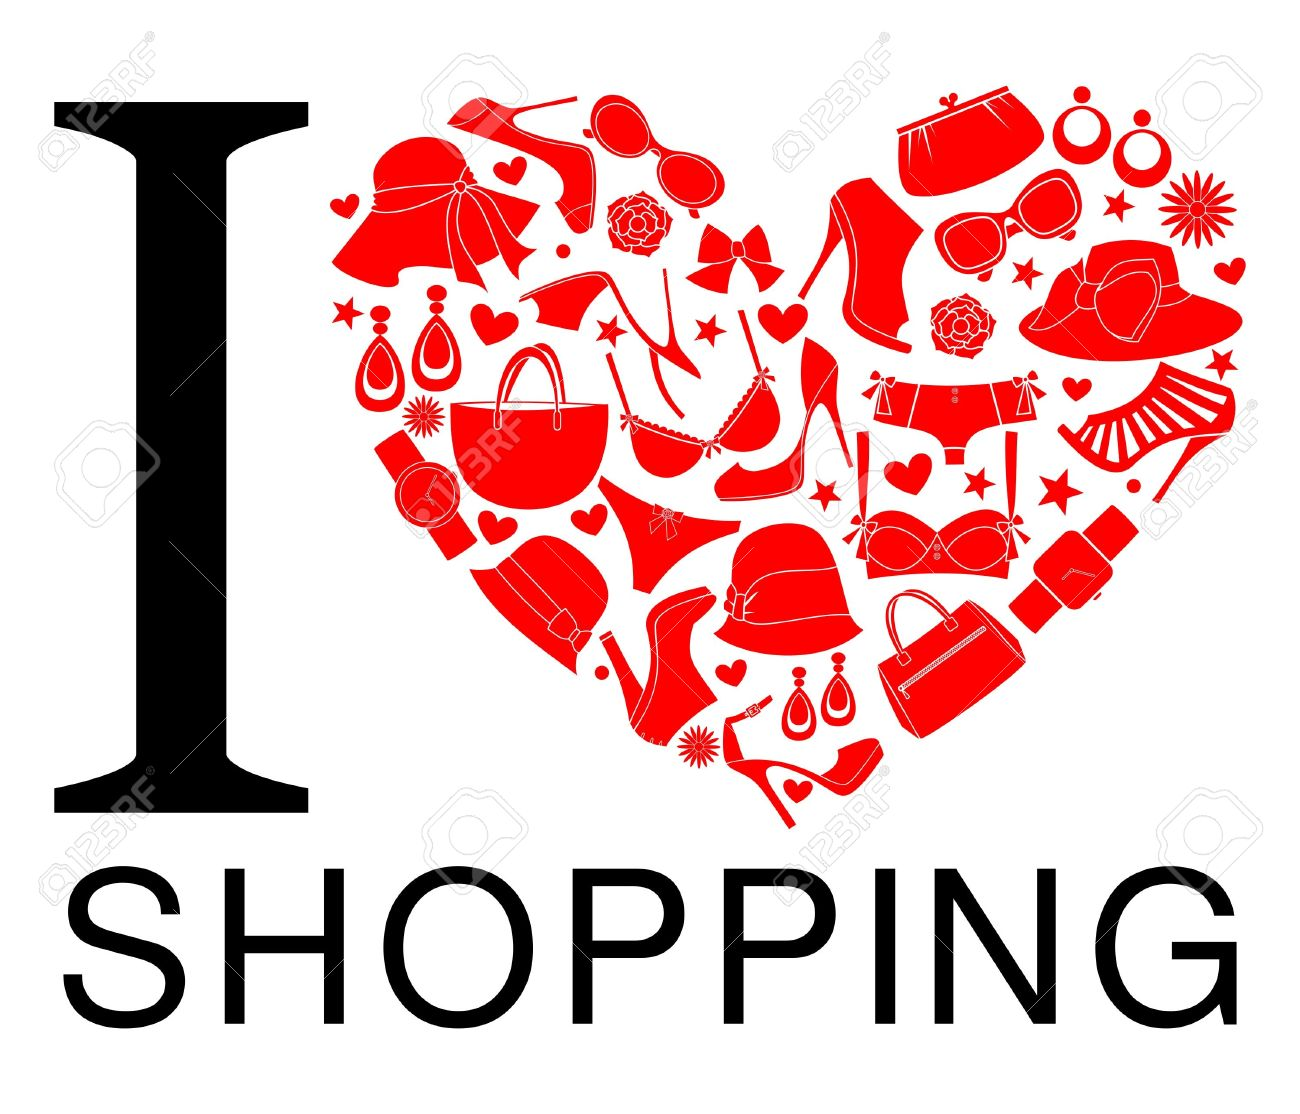 Get free wallpapers for your desktop keep calm and love shopping 33251, height: 1163 pixels, width: 789 pixels